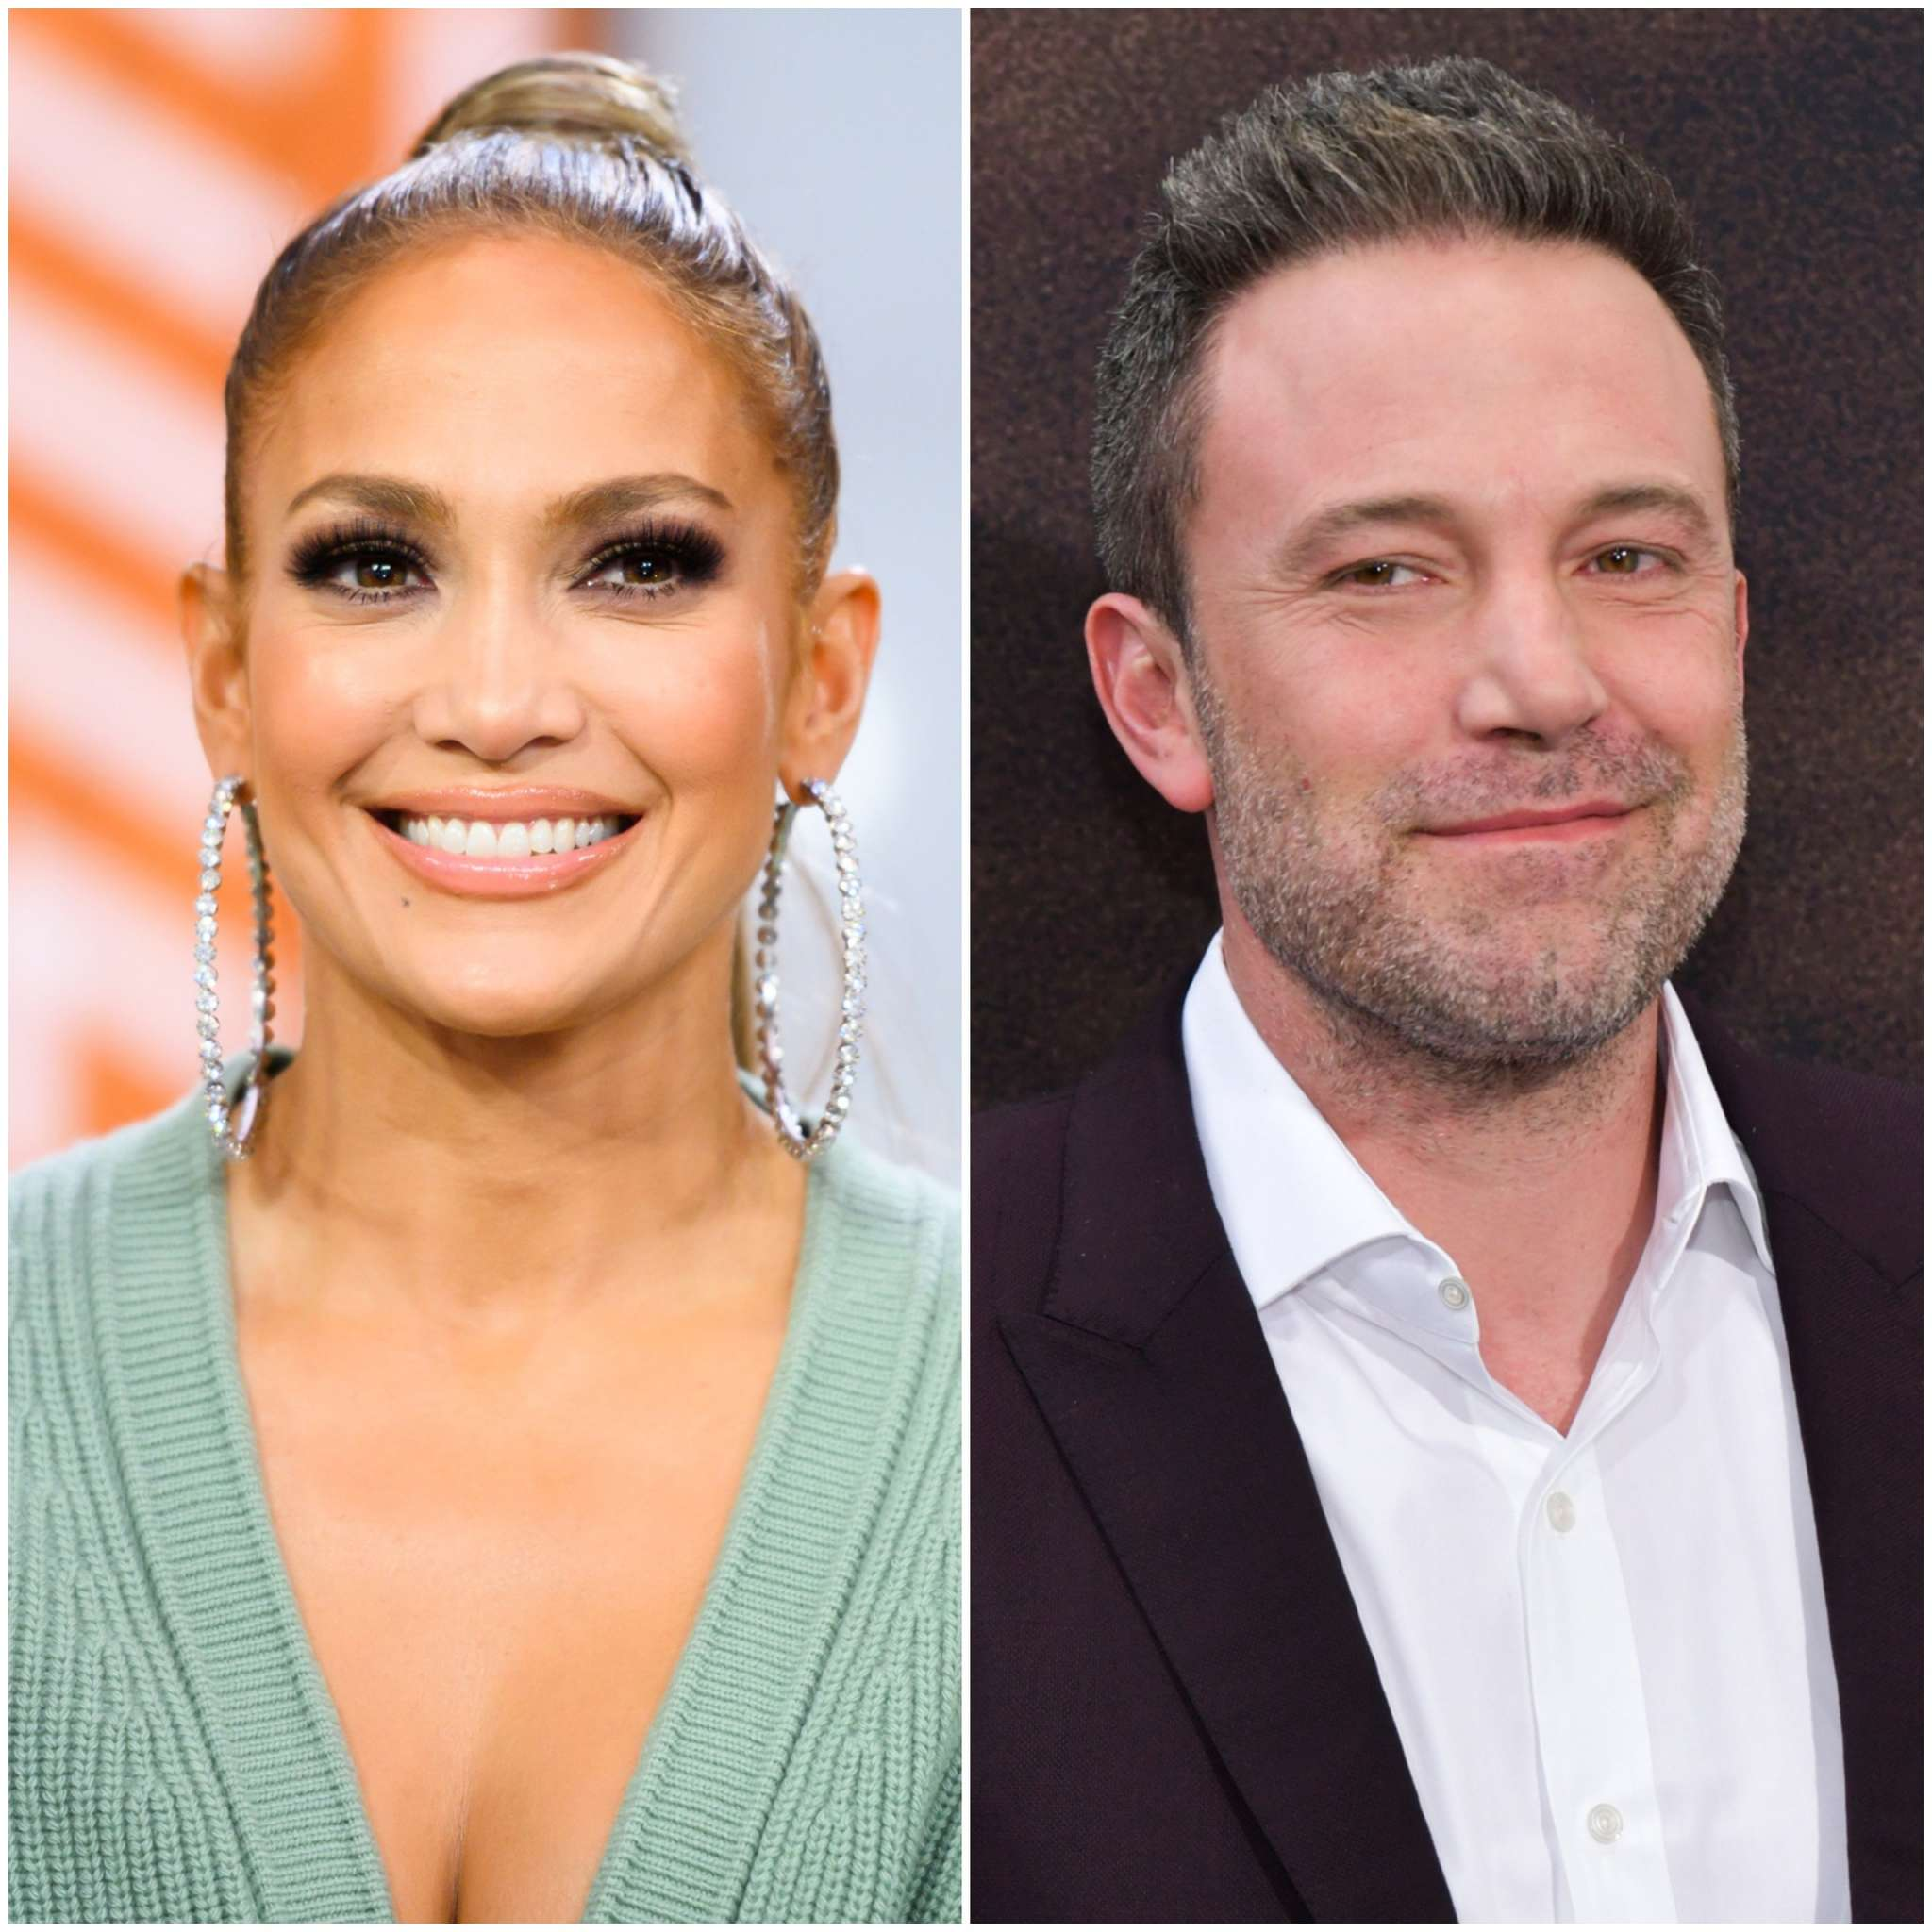 ben-affleck-and-jennifer-lopez-seen-house-hunting-with-her-twins-again-moving-in-together